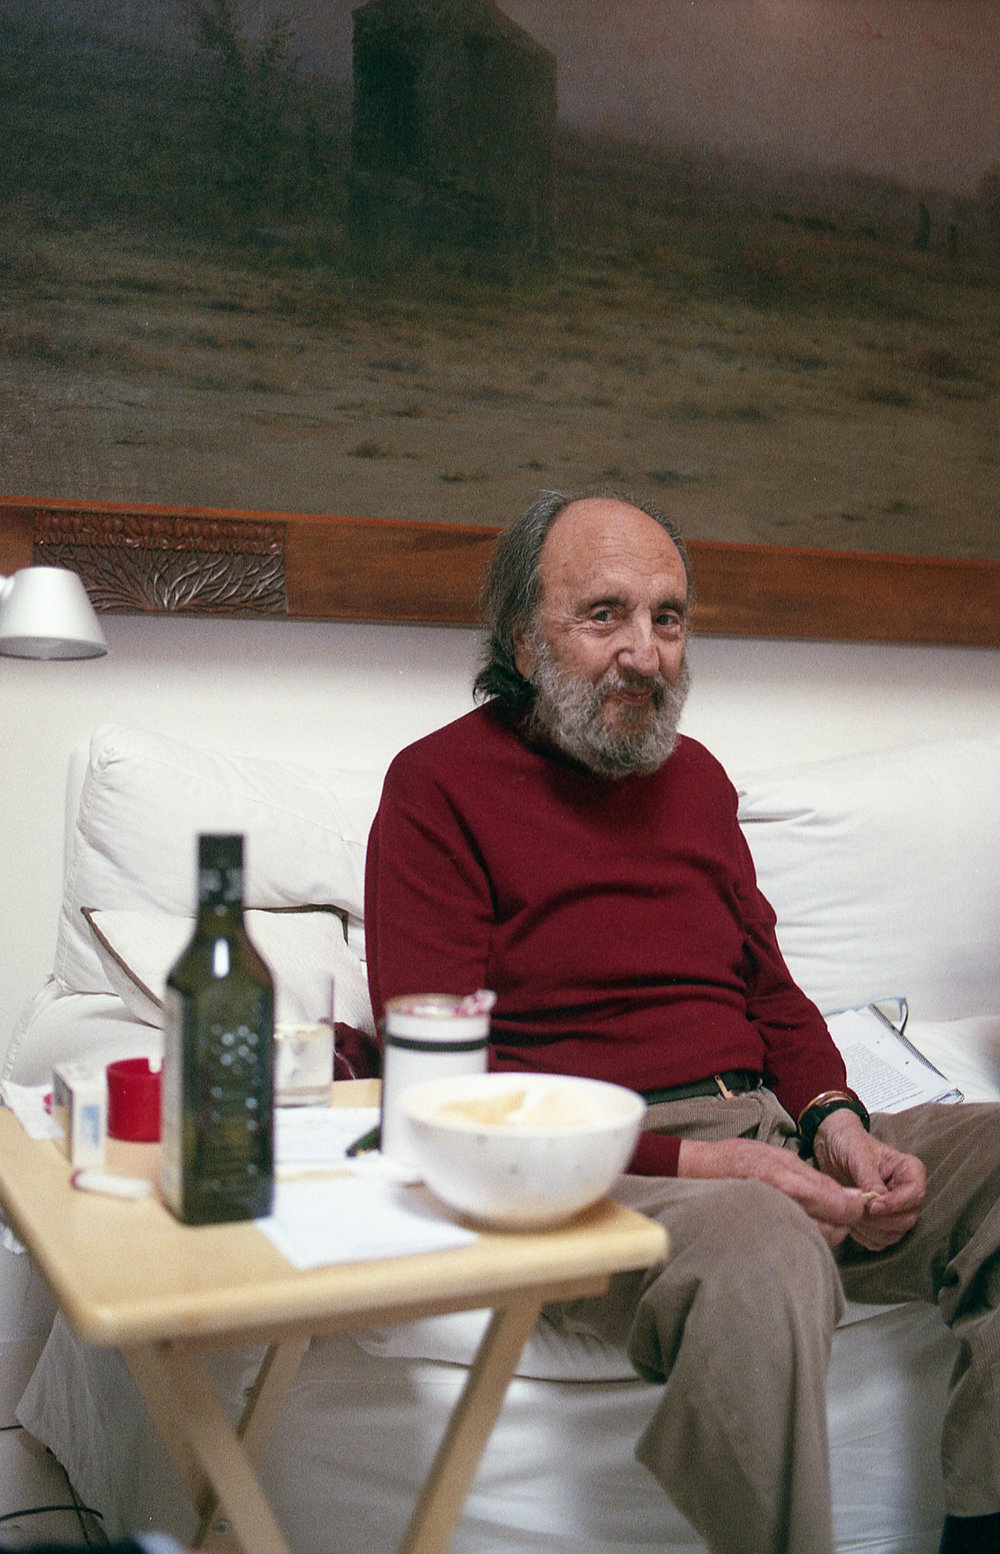 Photographer Leopoldo Pomés at his home in Barcelona. Spring 2017